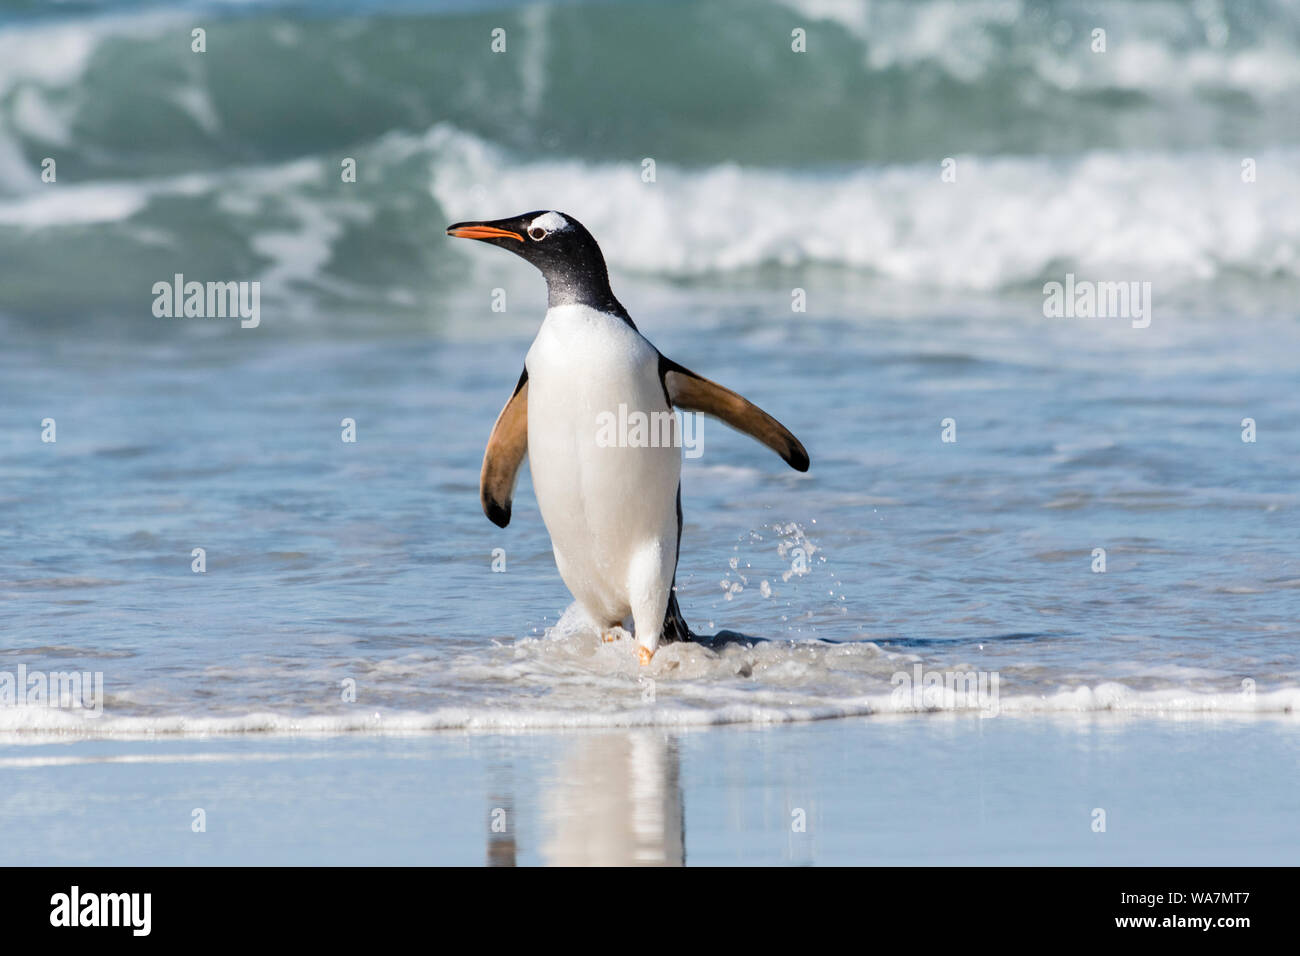 Wild, adult Gentoo Penguin, Pygoscellis papua, emerging from the surf at the Neck, Saunders Island, in the Falkland Islands, South Atlantic Ocean Stock Photo